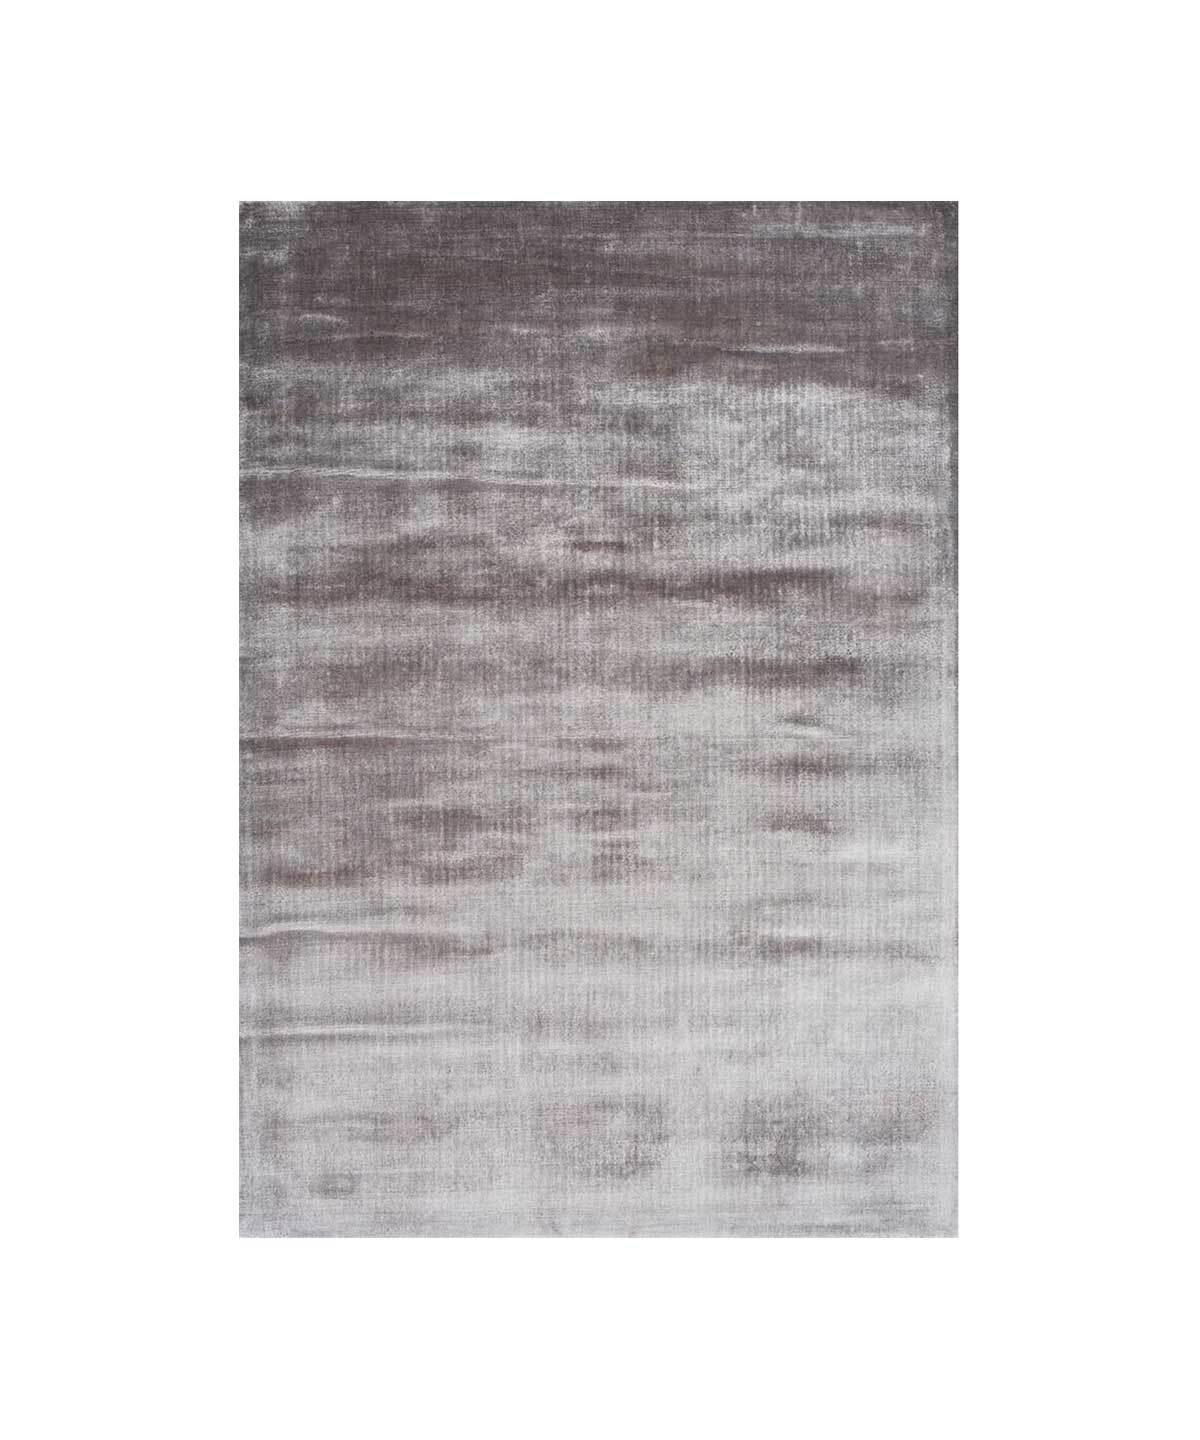 Lucens Rug in Silver by Loloi | TRNK